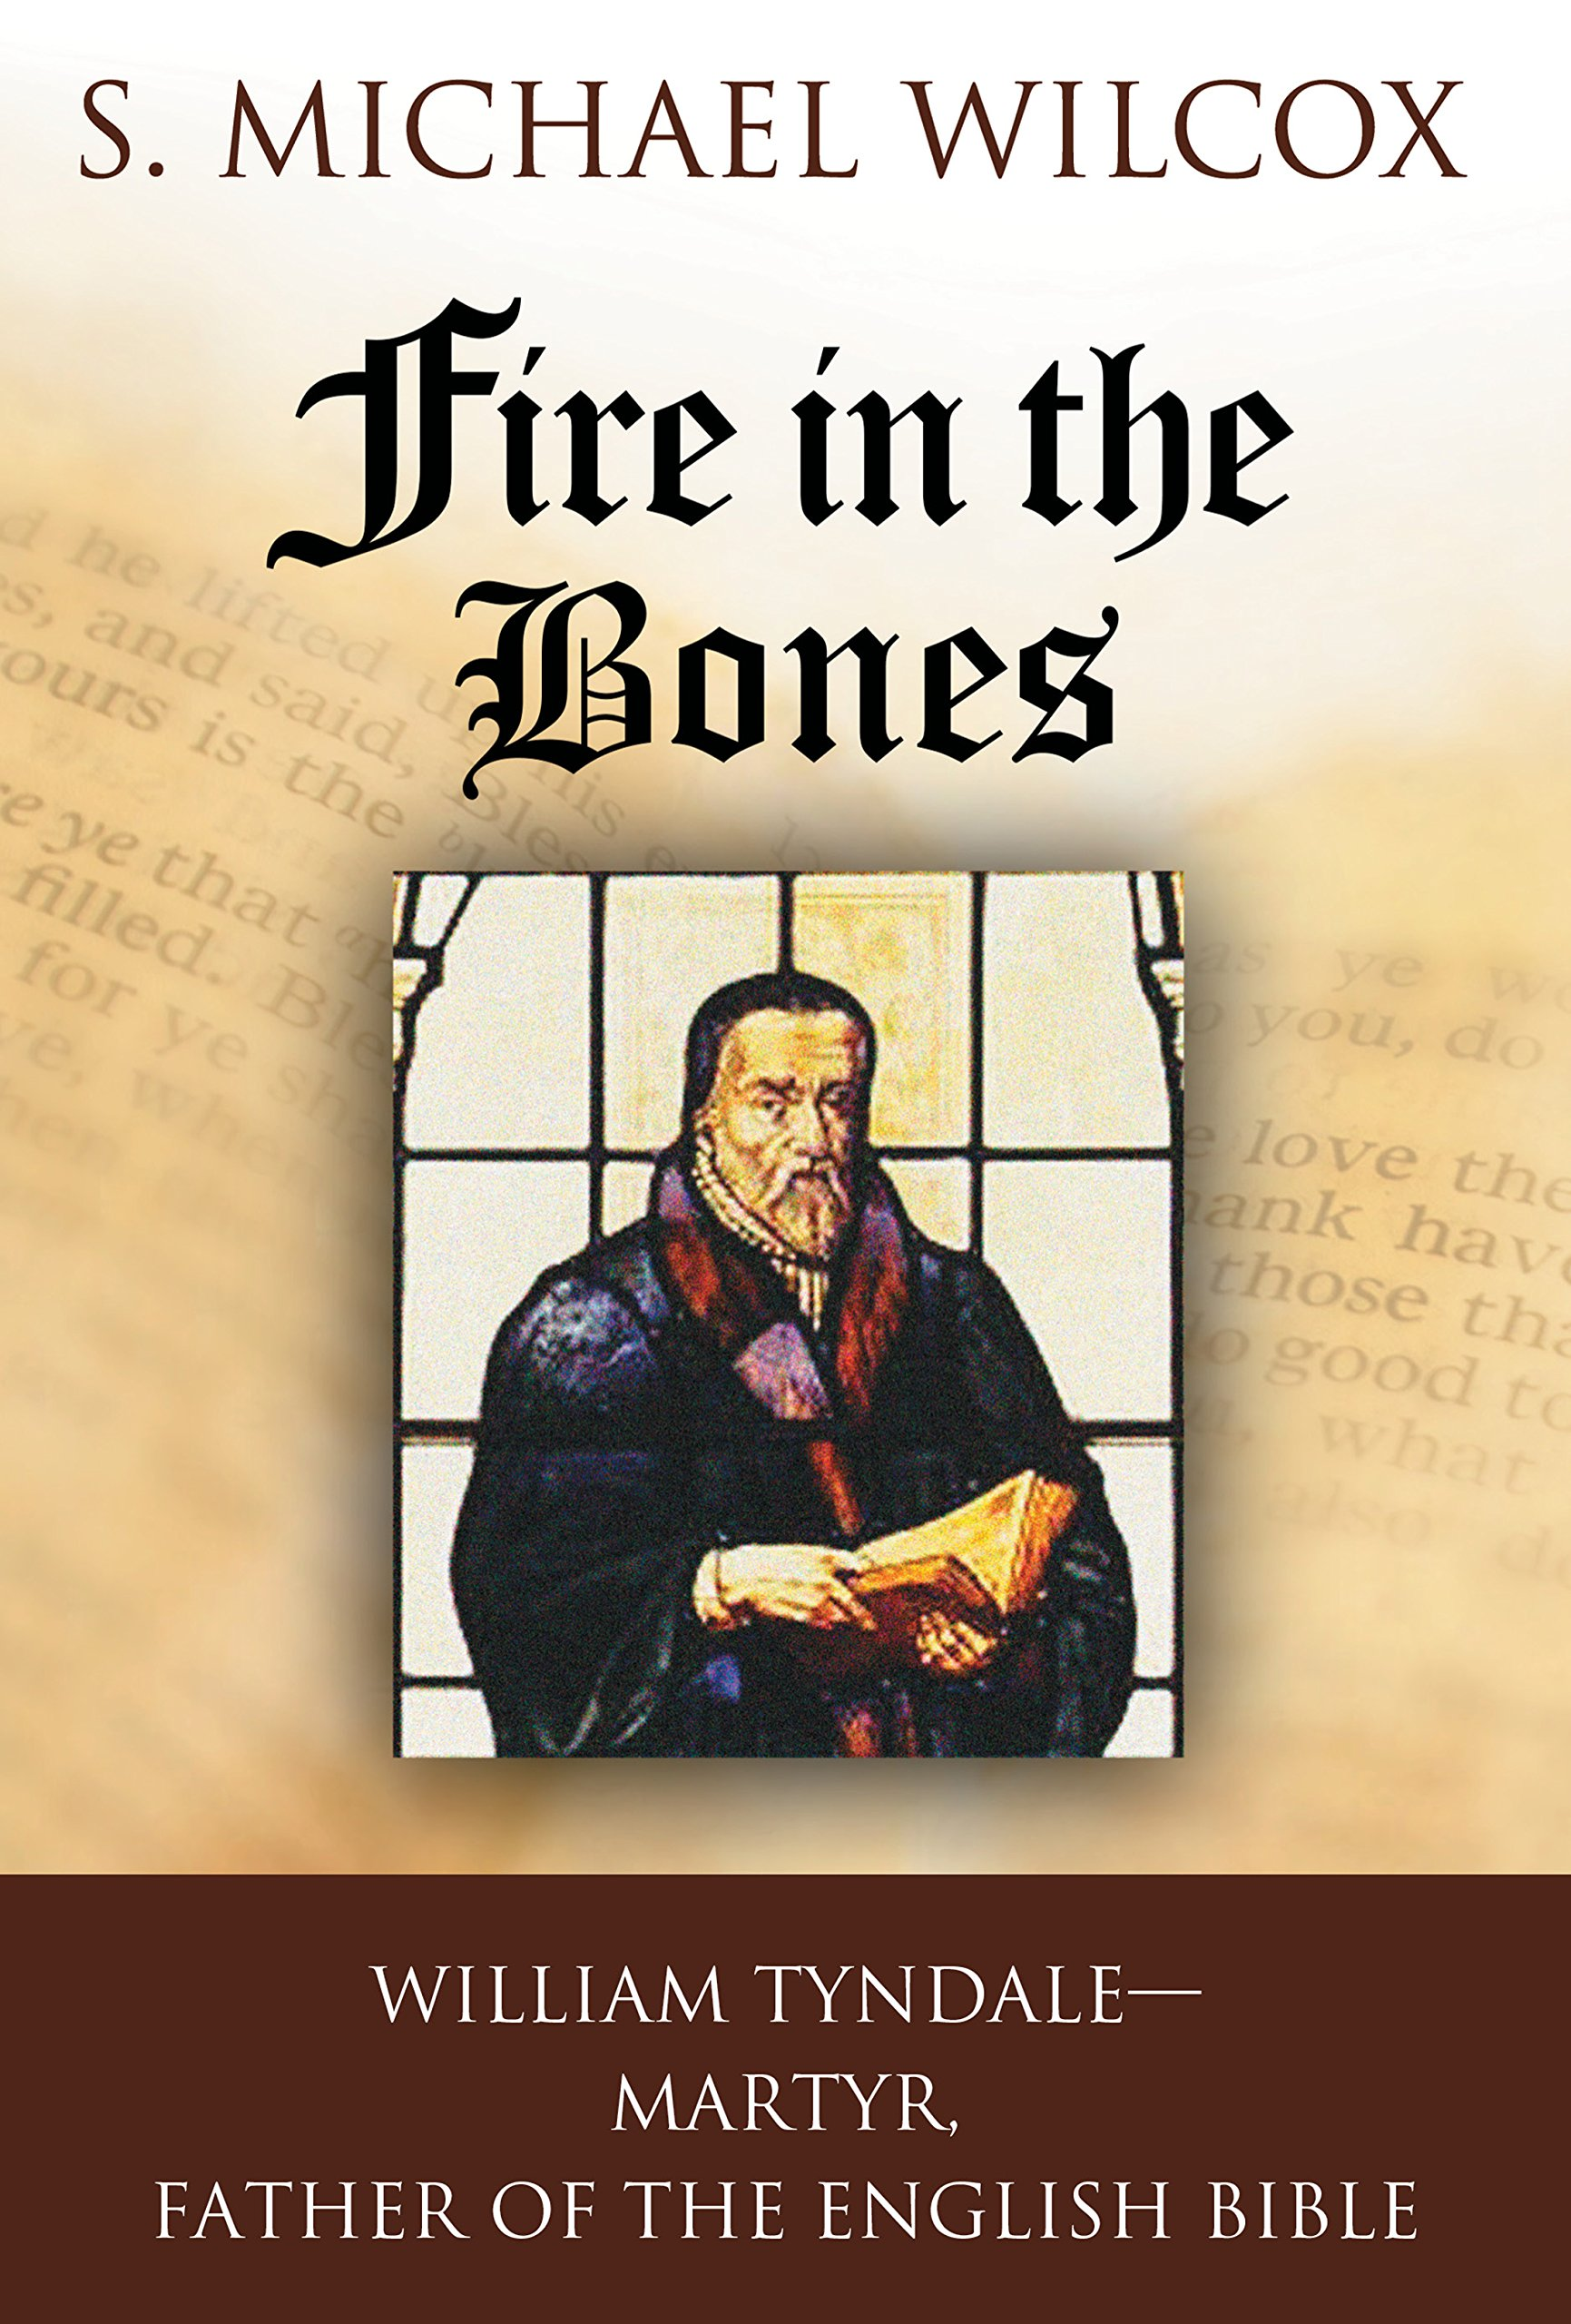 Download Fire in the Bones: William Tyndale, Martyr, Father of the English Bible PDF